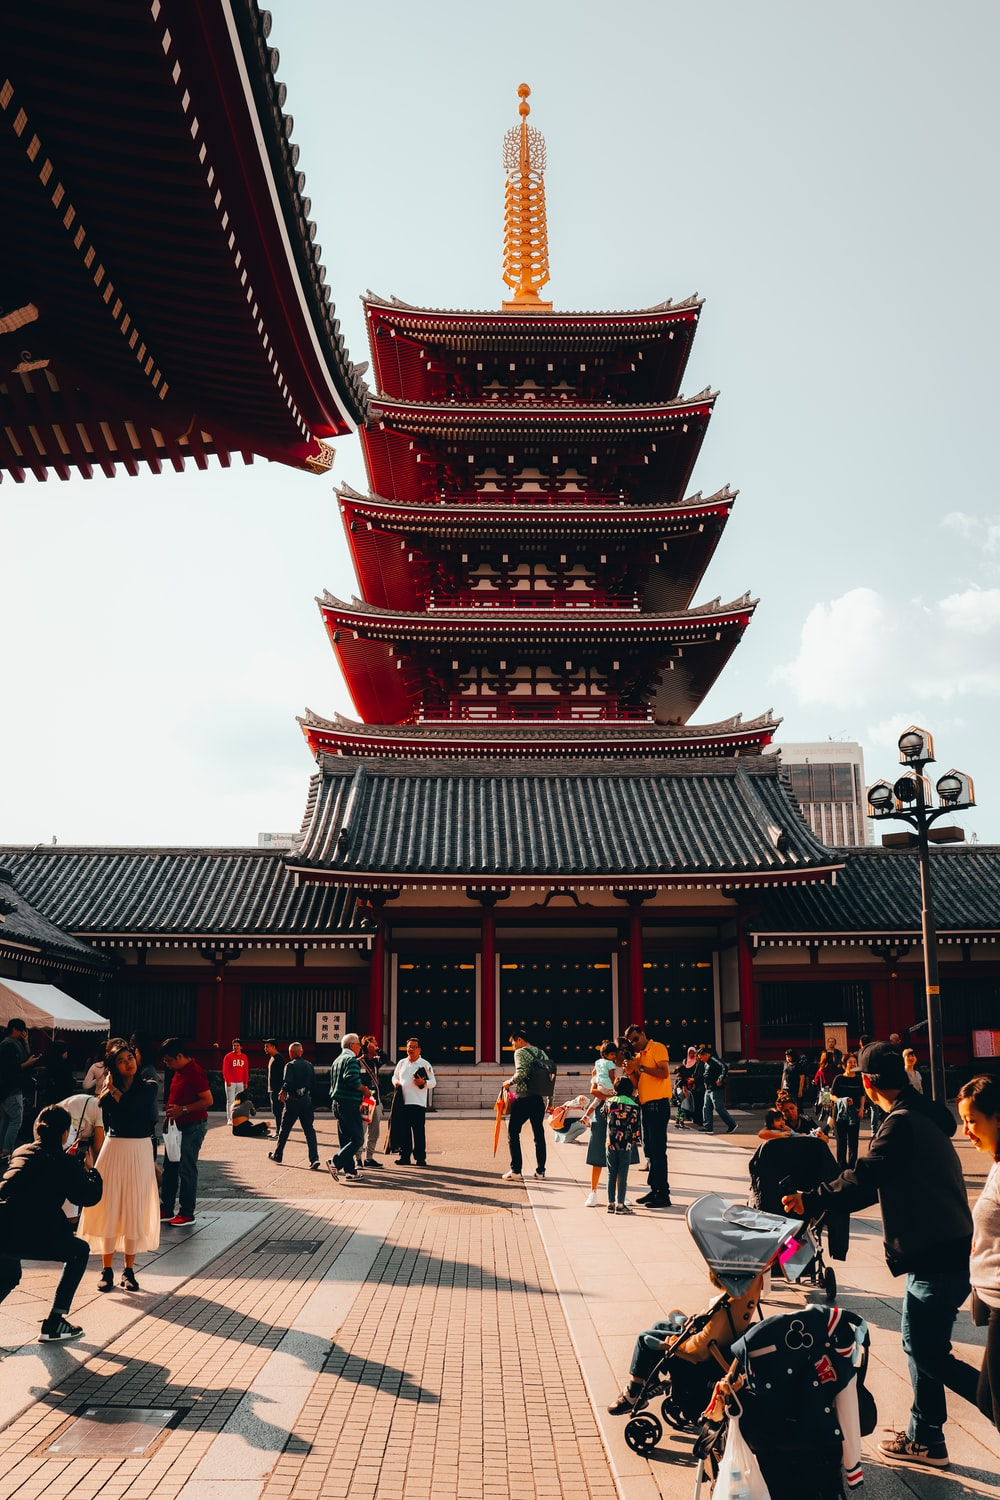 people walking on red and brown temple during daytime